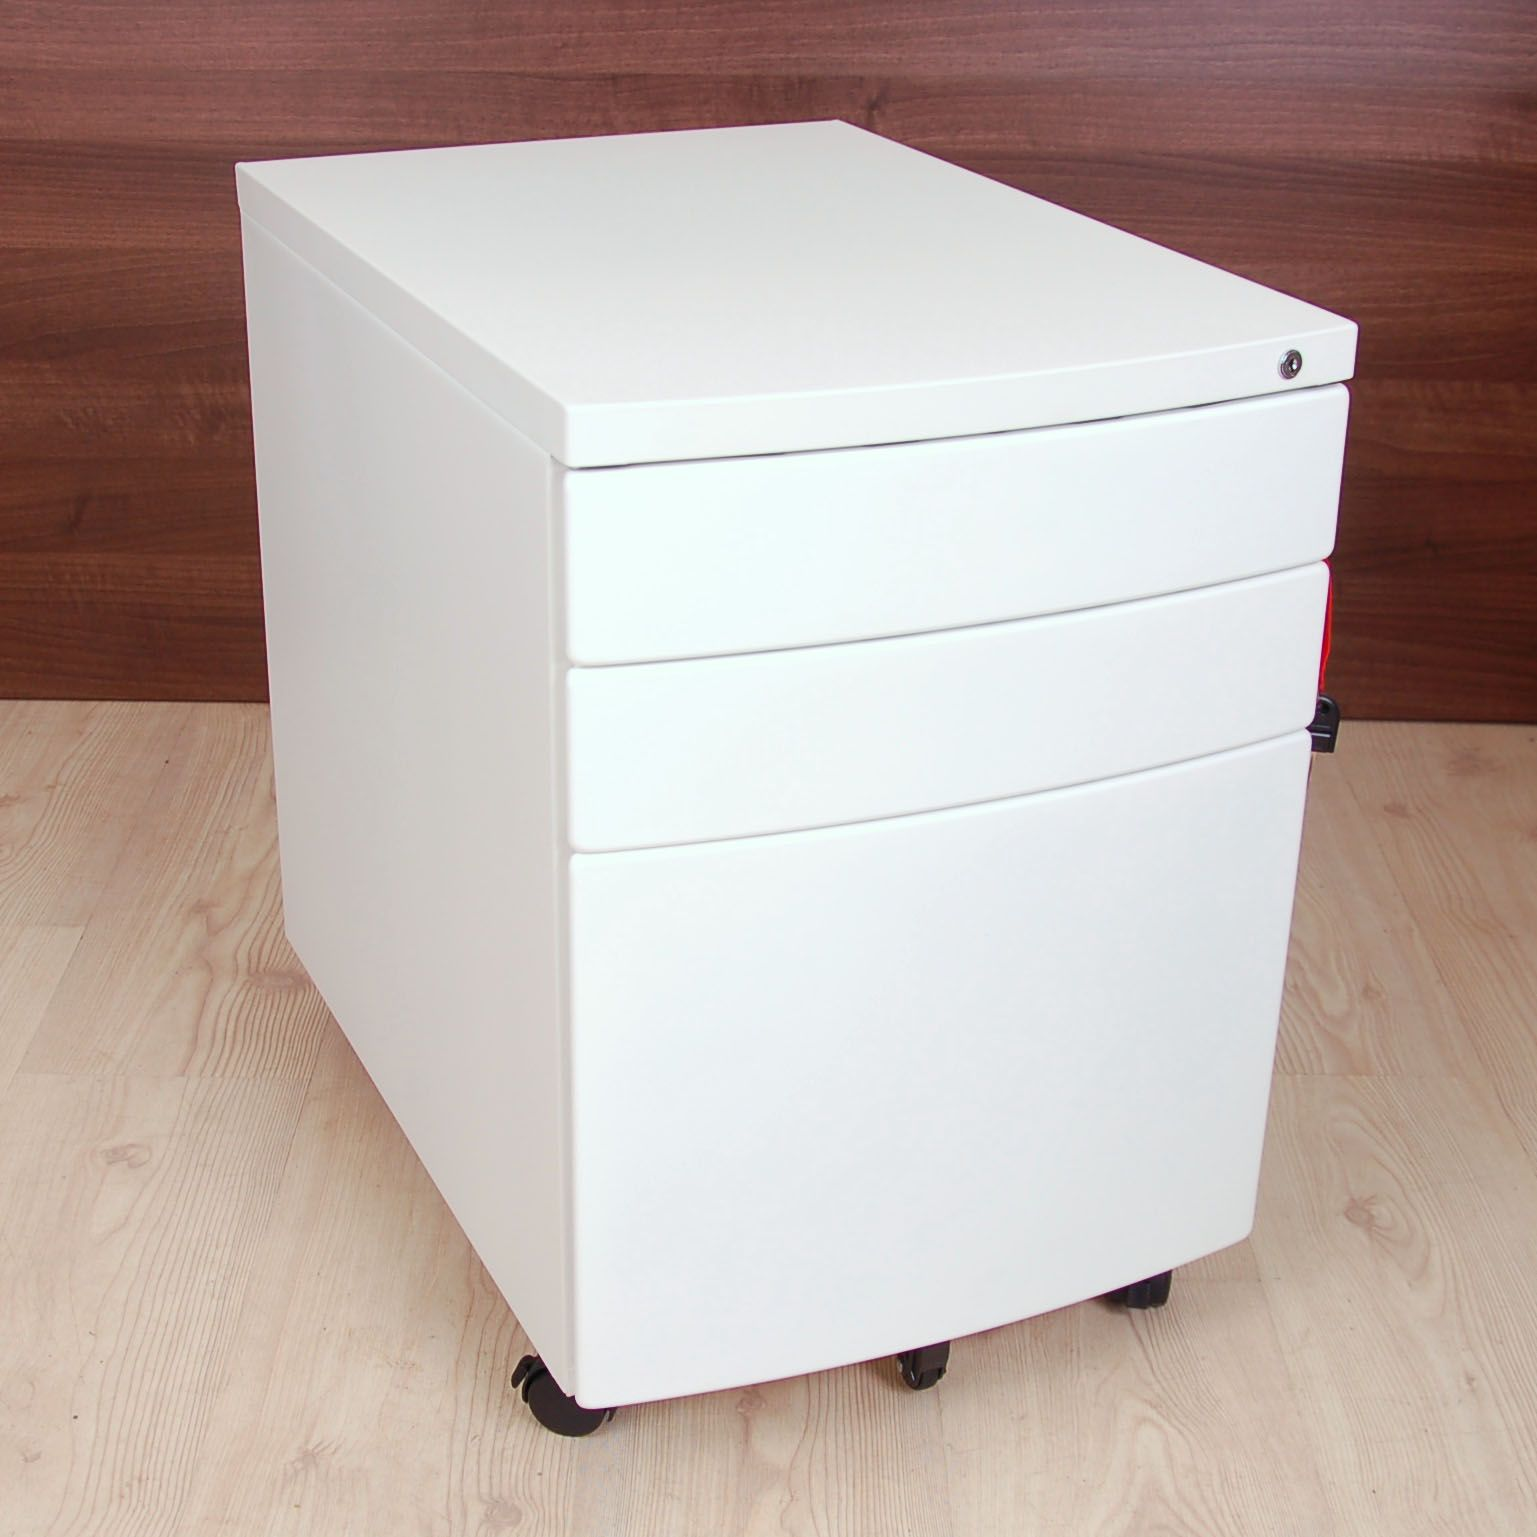 Flex New White Pedestal White Under Desk Drawers